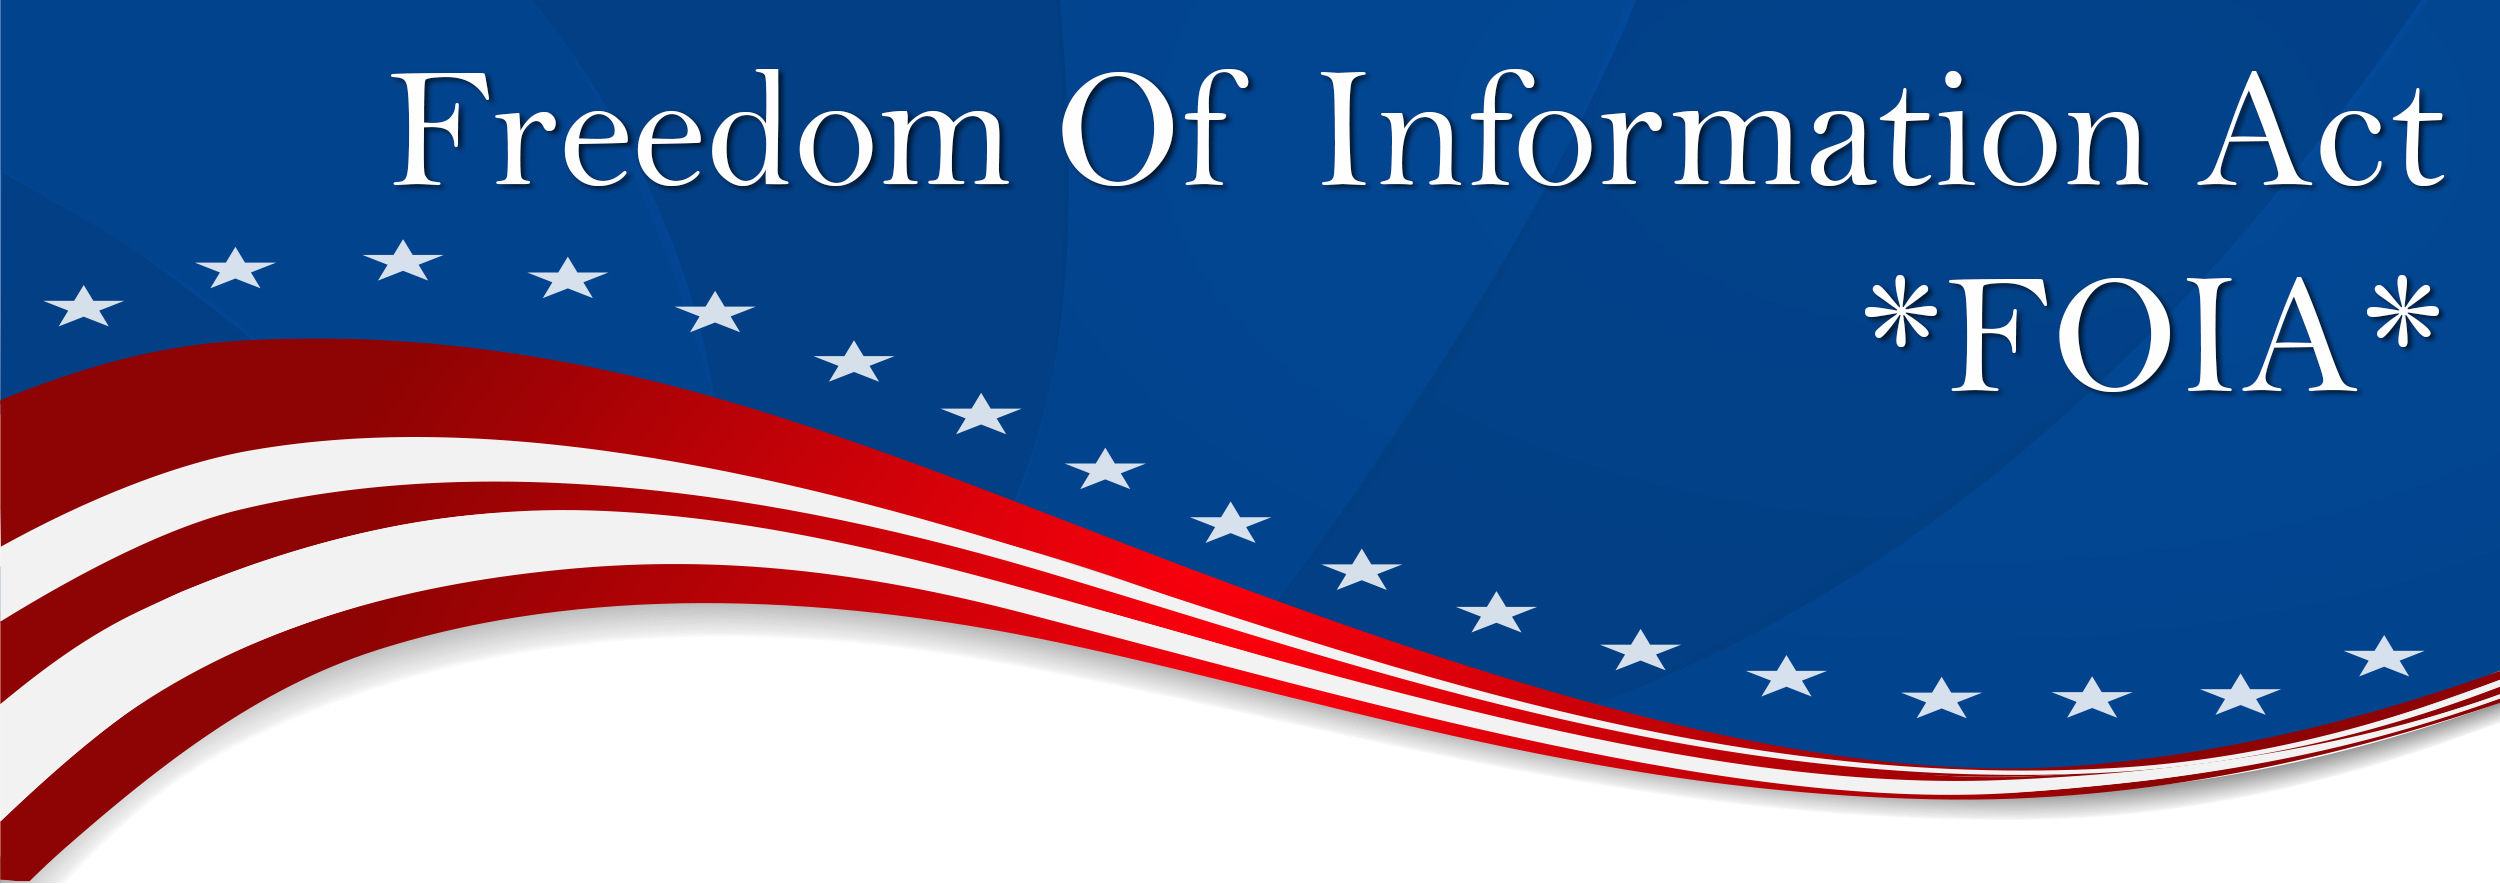 freedom of information act Freedom of information act the freedom of information act (foia) is a federal statute foia generally provides that any person has a right, enforceable in court, of access to federal agency records, except to the extent the records are protected from disclosure by any of the nine exemptions contained in the law or by one of three special law.